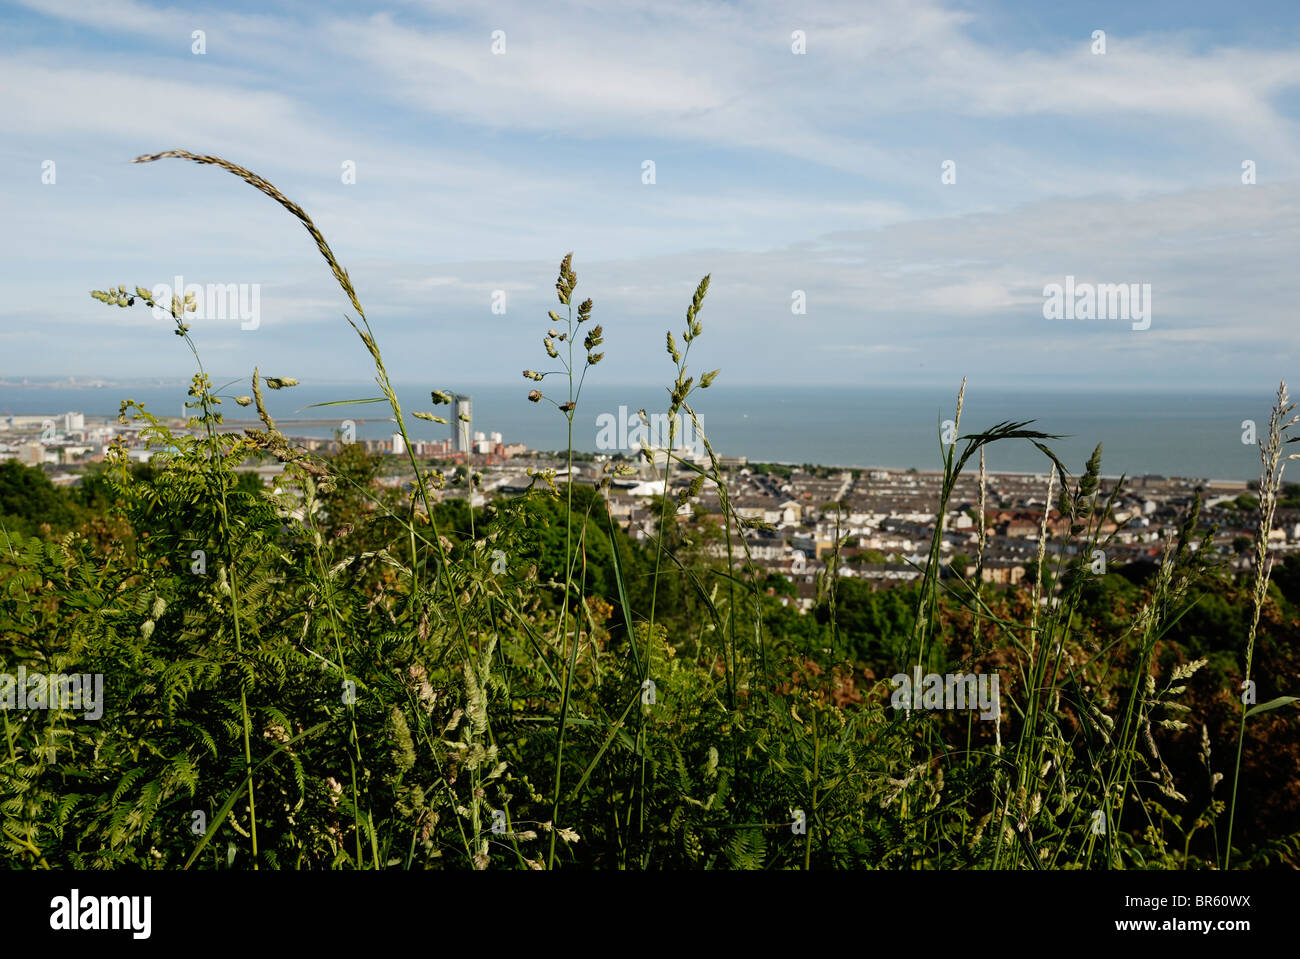 View of the City of Swansea taken from Rosehill Community Park with wild grasses in the foreground, Wales. - Stock Image